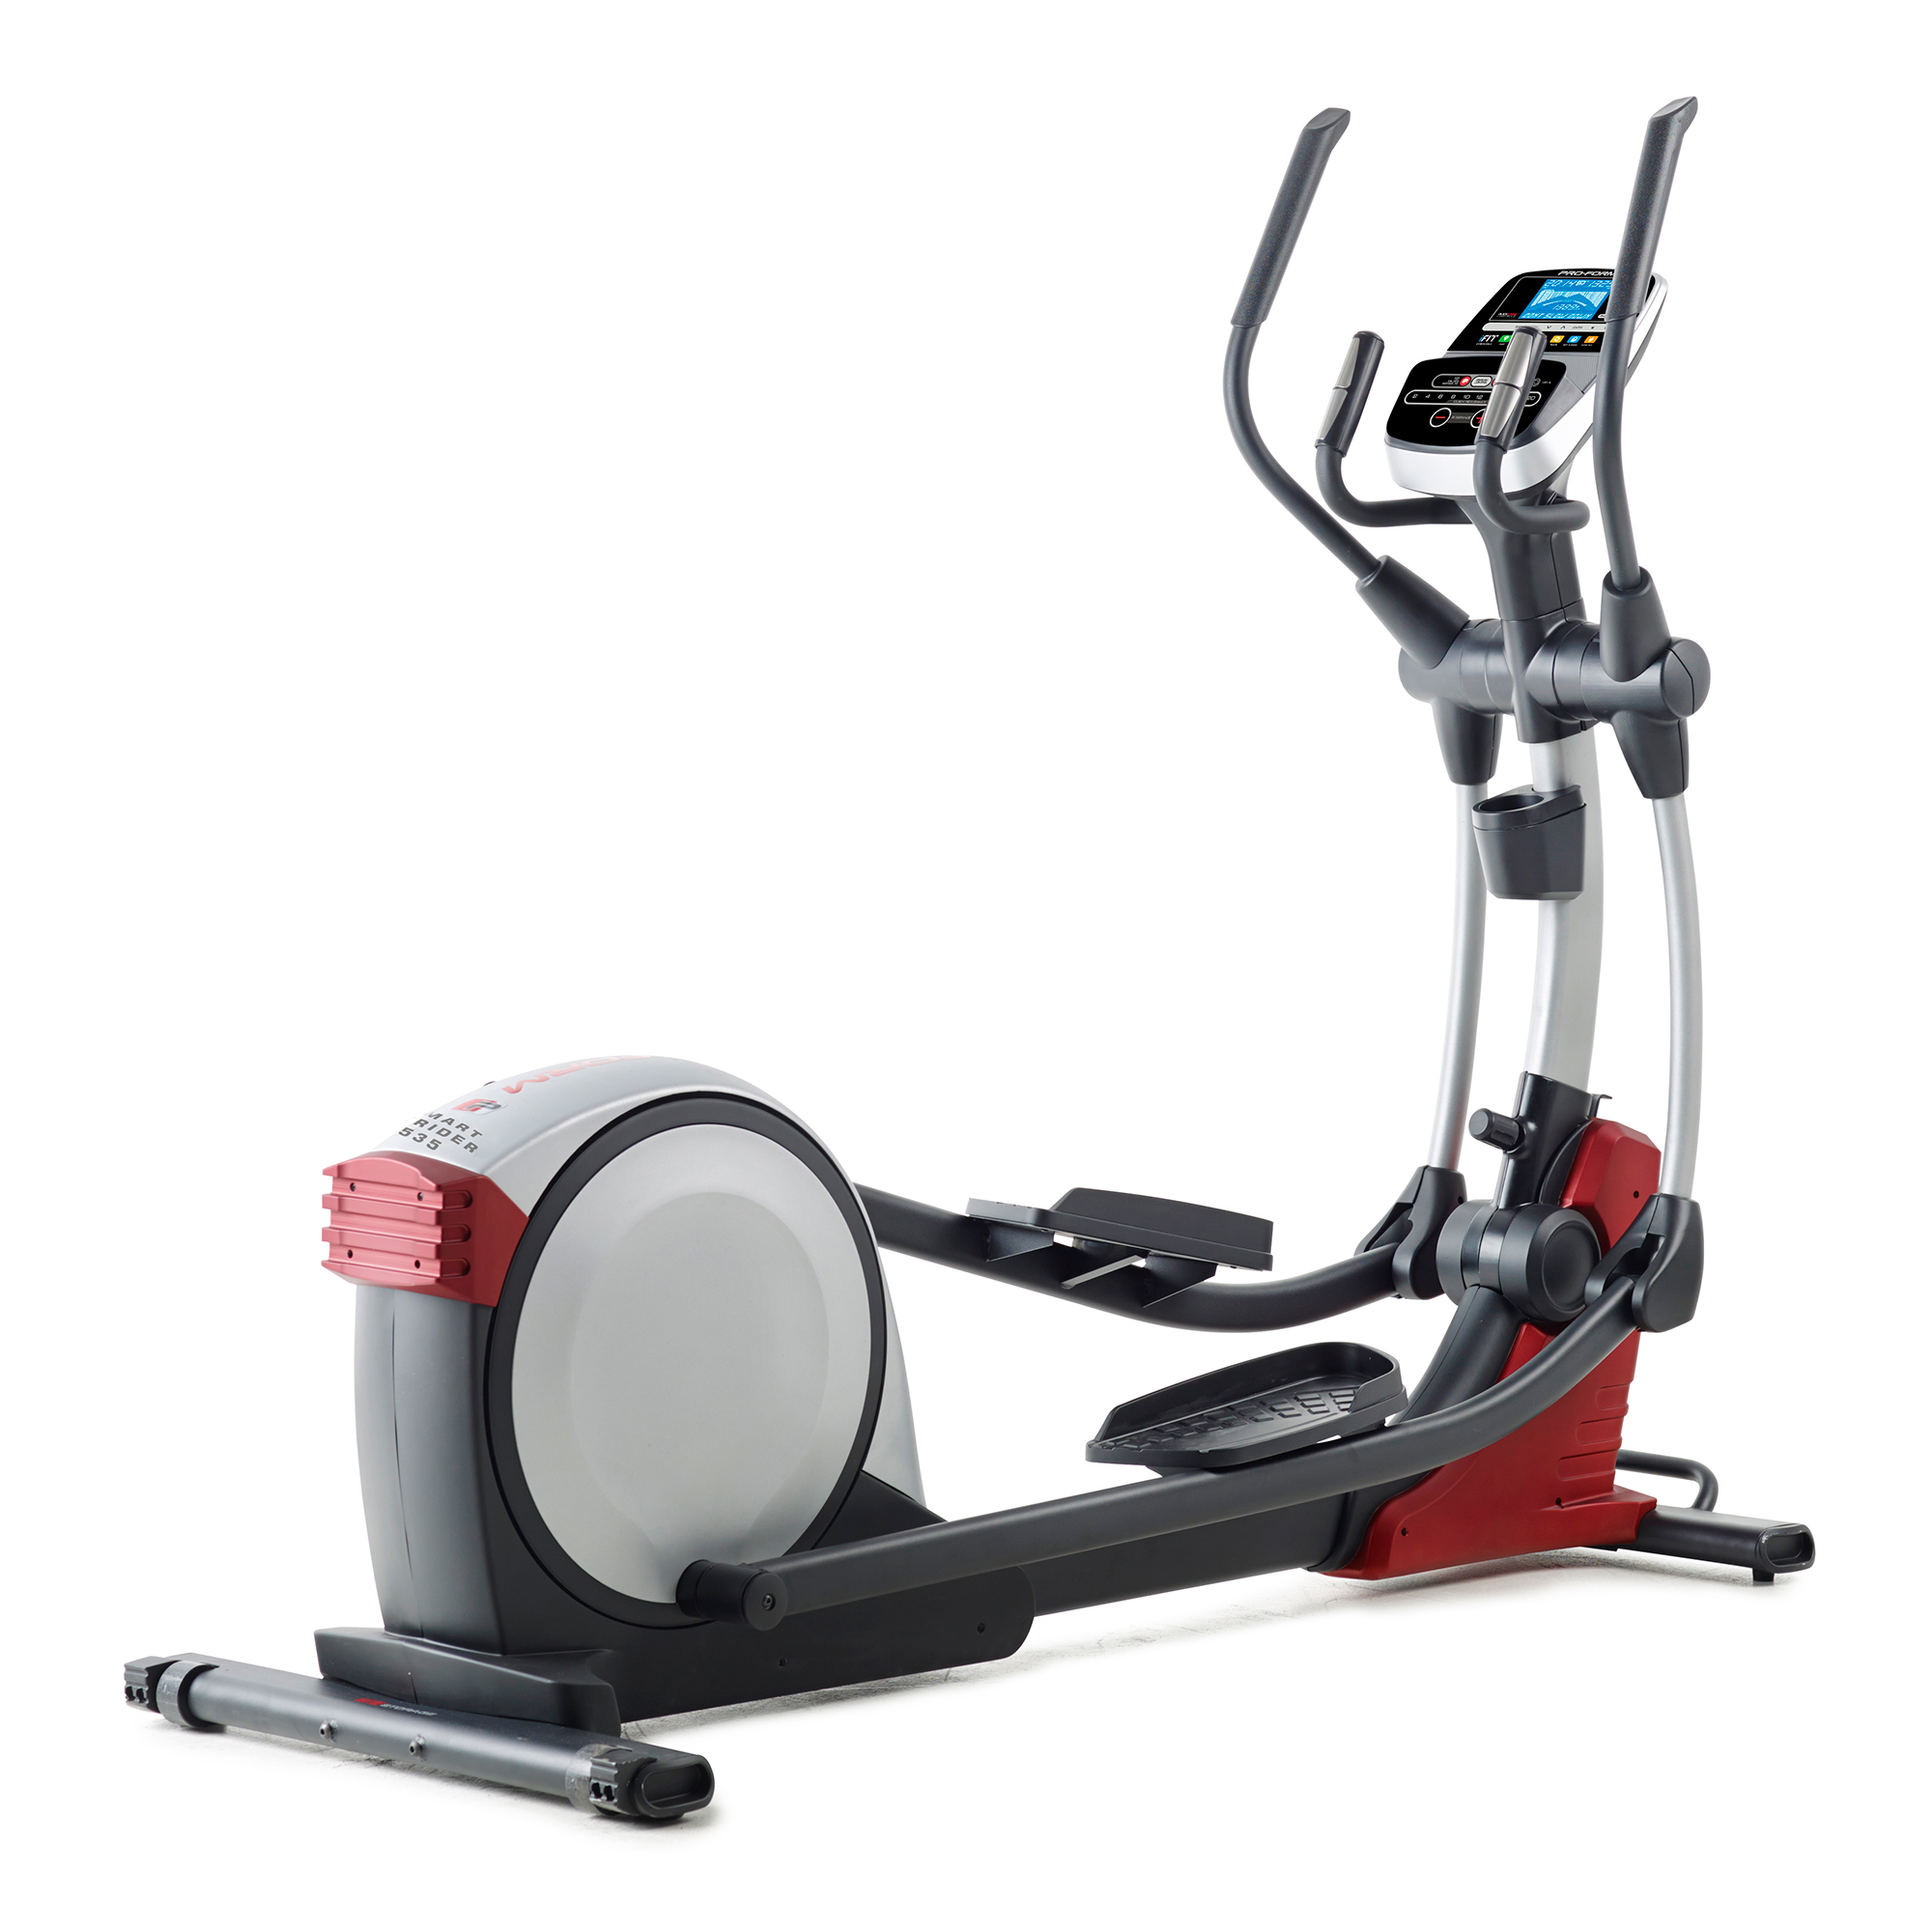 Horizon Elliptical Ce6 0: Pro-Form Cross Trainers